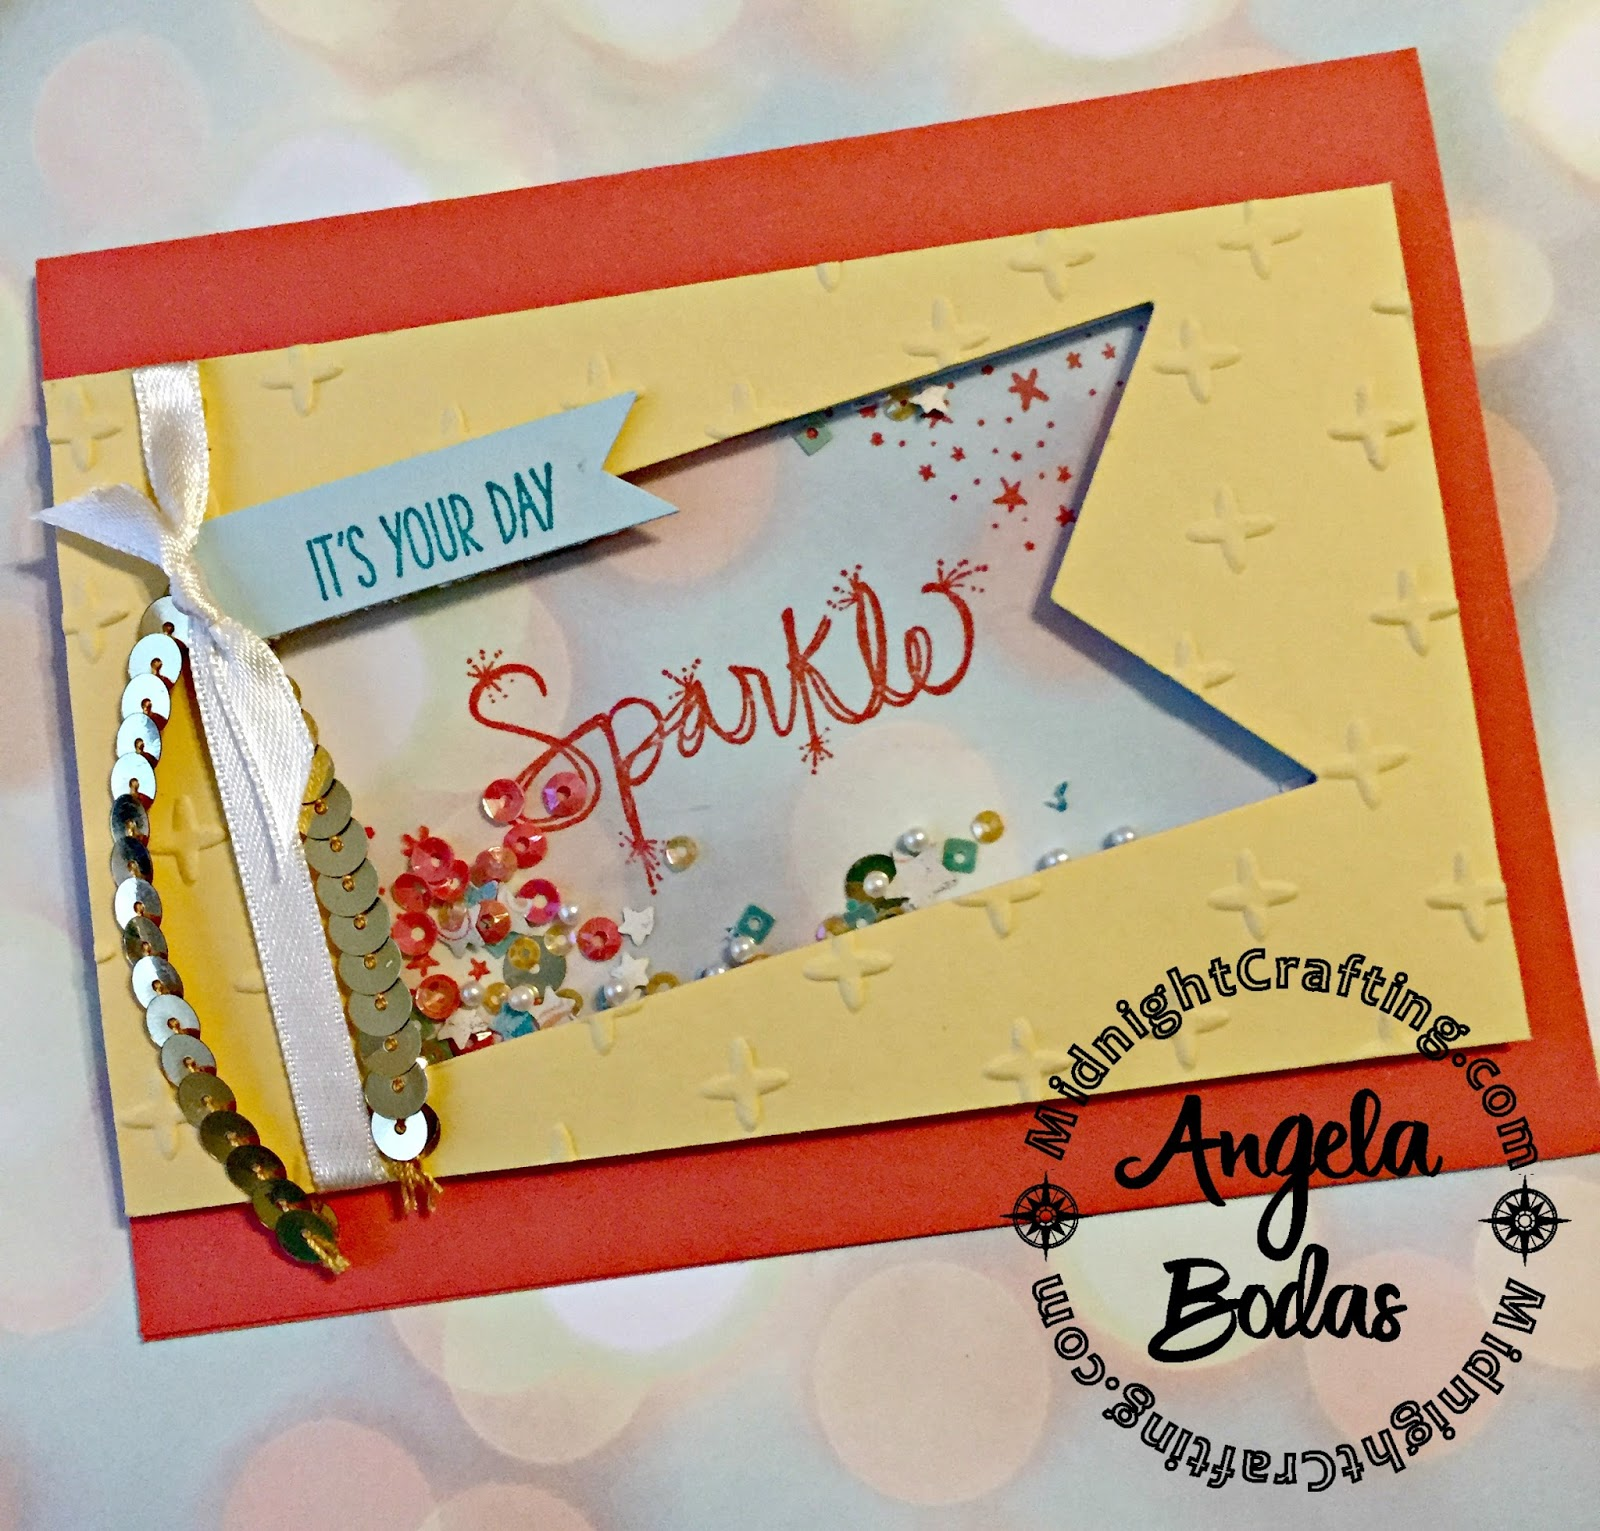 Love Sparkles Shaker Card Occasions 2017 Midnight Crafting